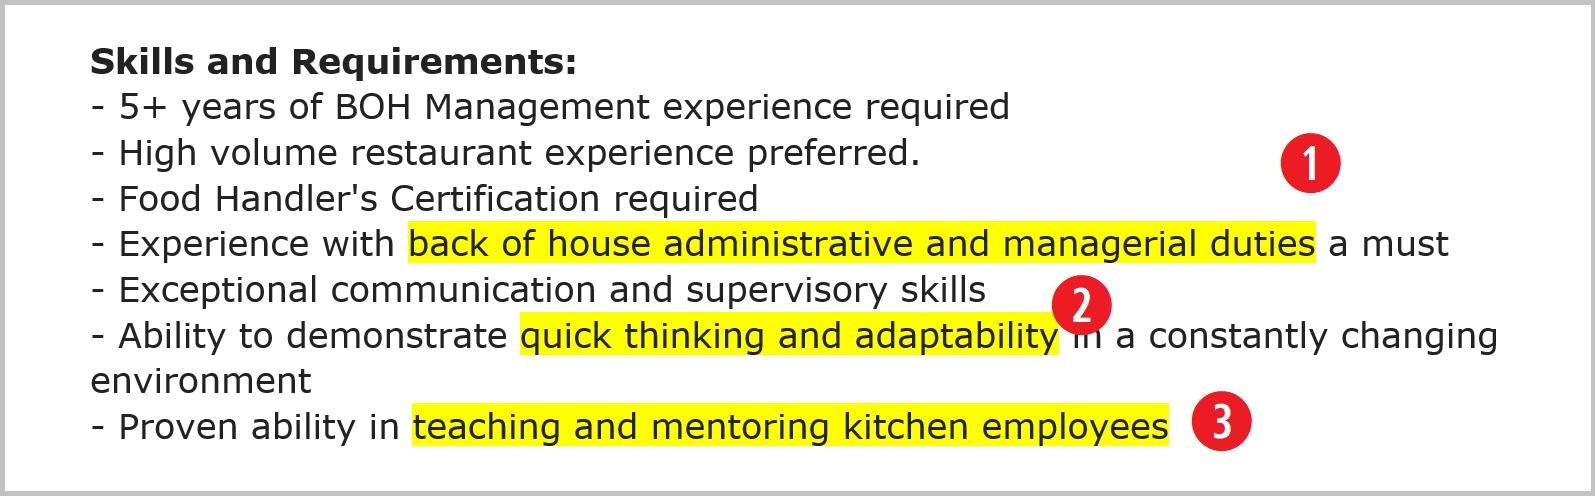 chef resume skills and requirements